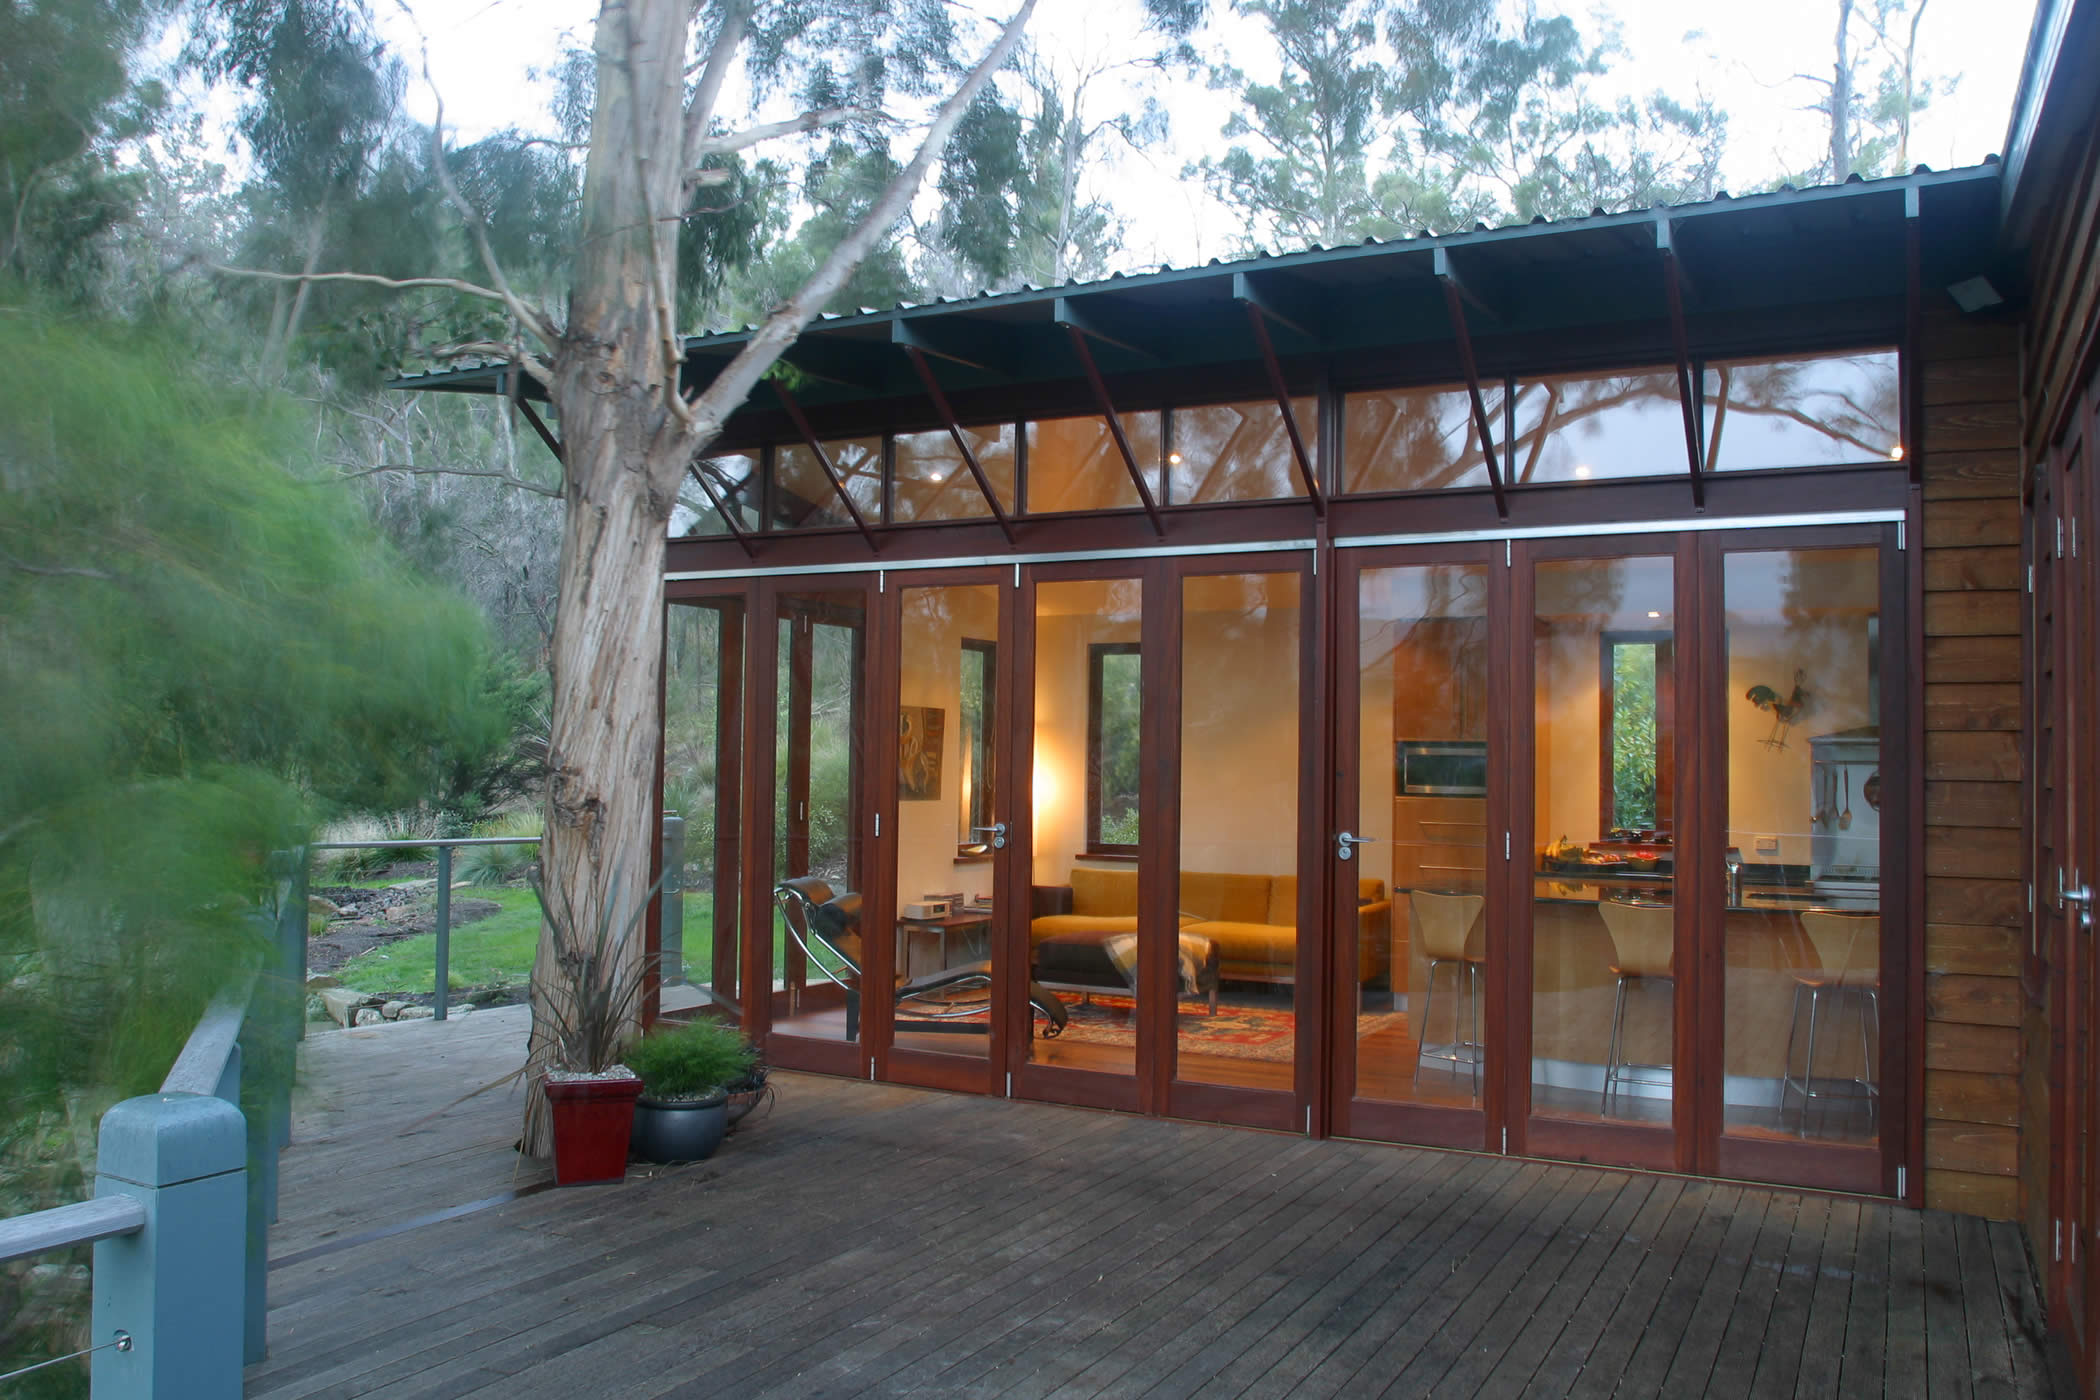 House Butler Extension: Glazed recycled hardwood (mixed eucalyptus) timber bi-fold doors and high-level windows bring the outside in. Photo by Peter Whyte.